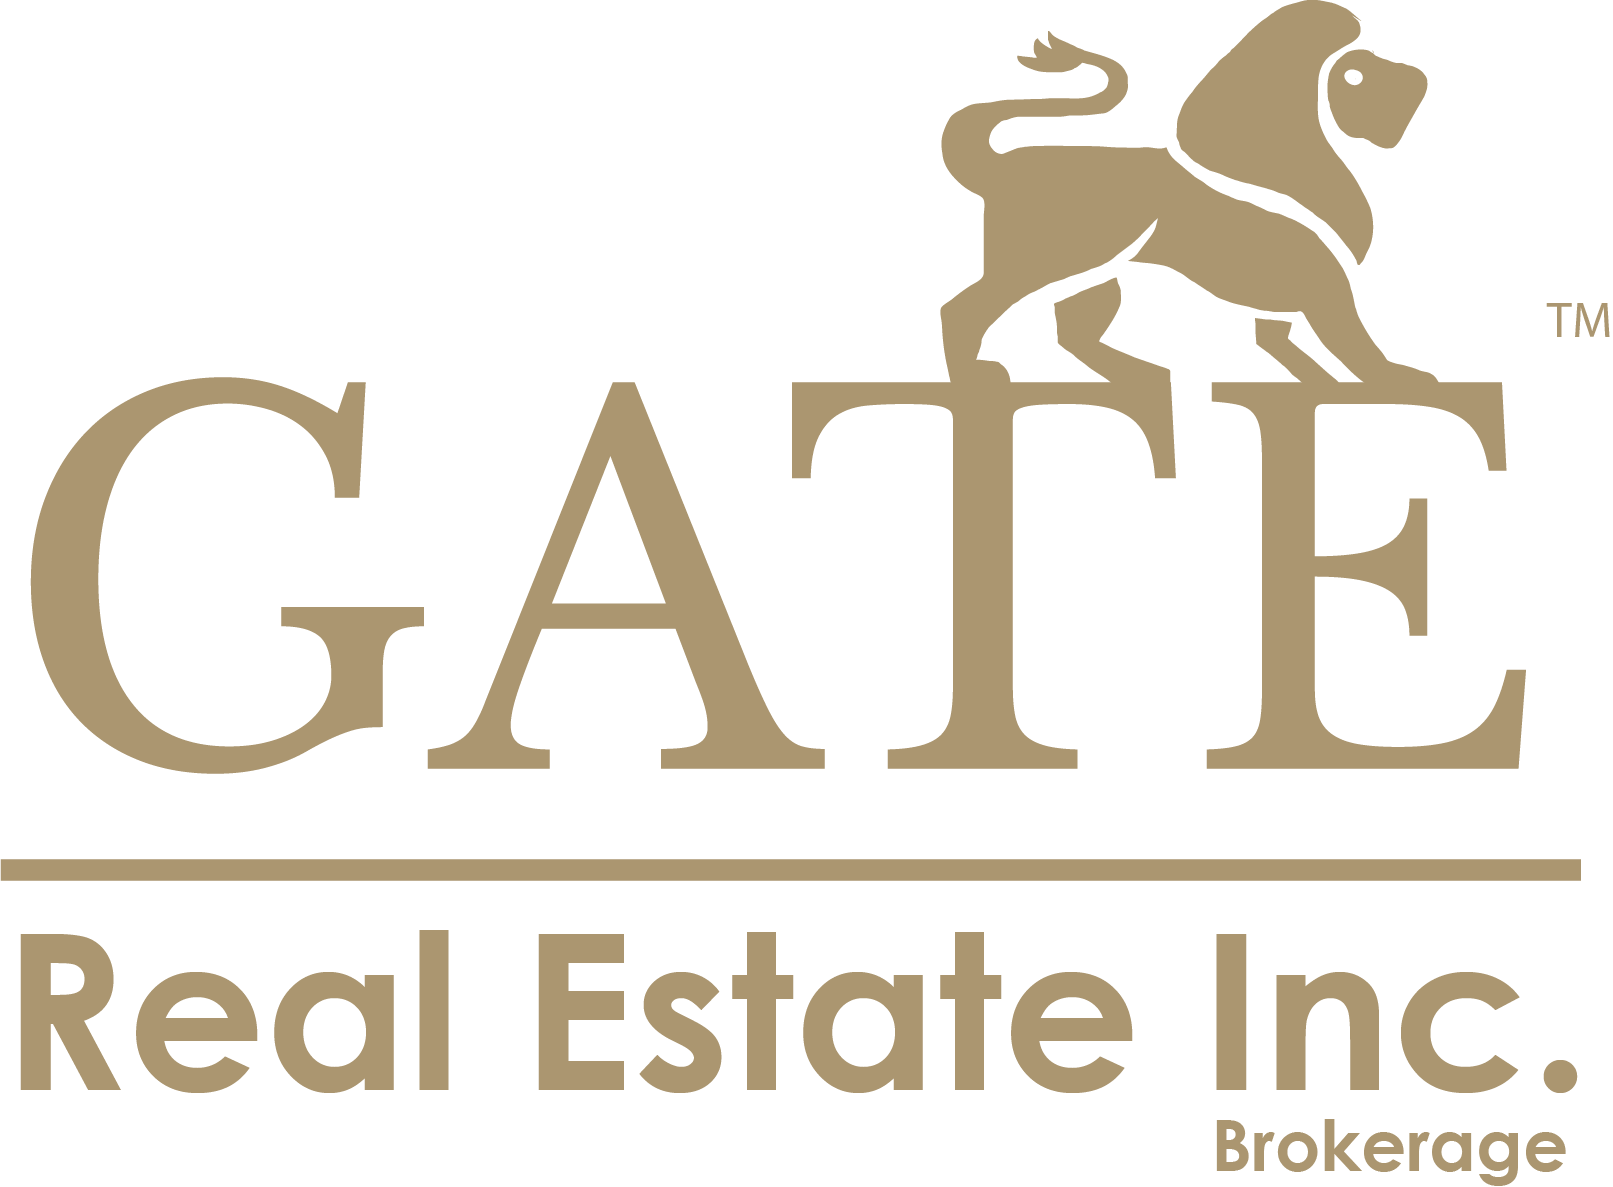 Gate Real Estate Inc.